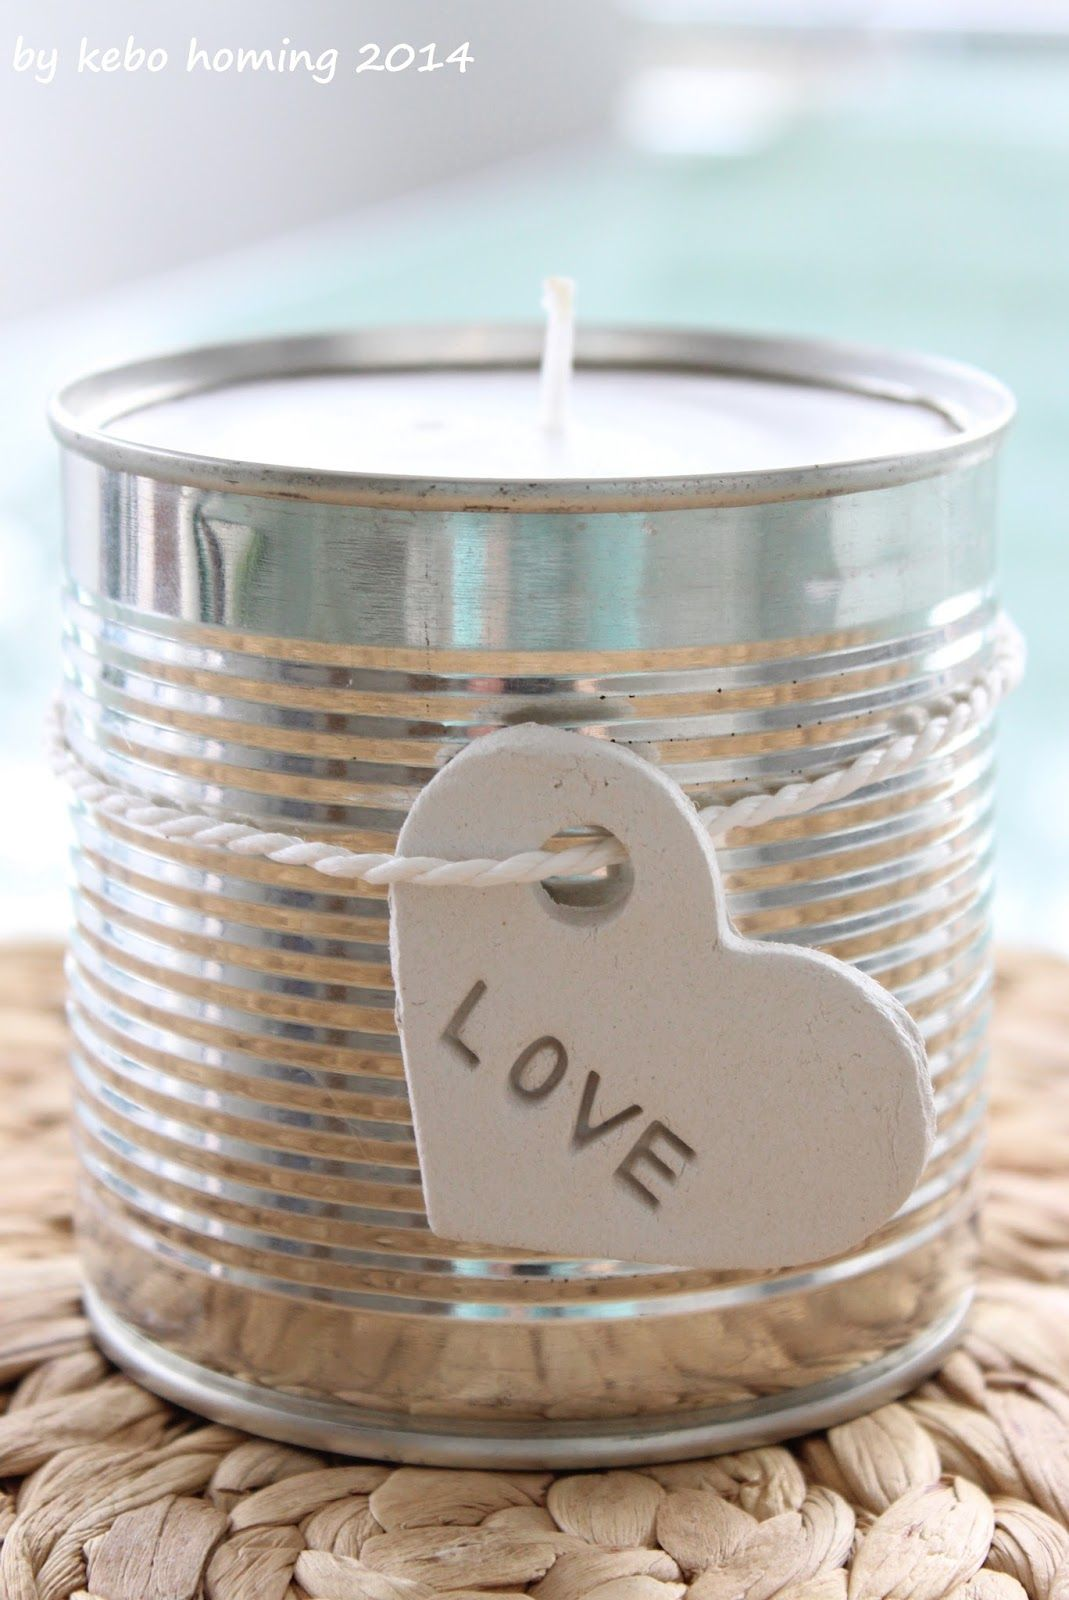 Alte Kerzen Neue Kerzen Wedding Ideas Tin Can Crafts Diy